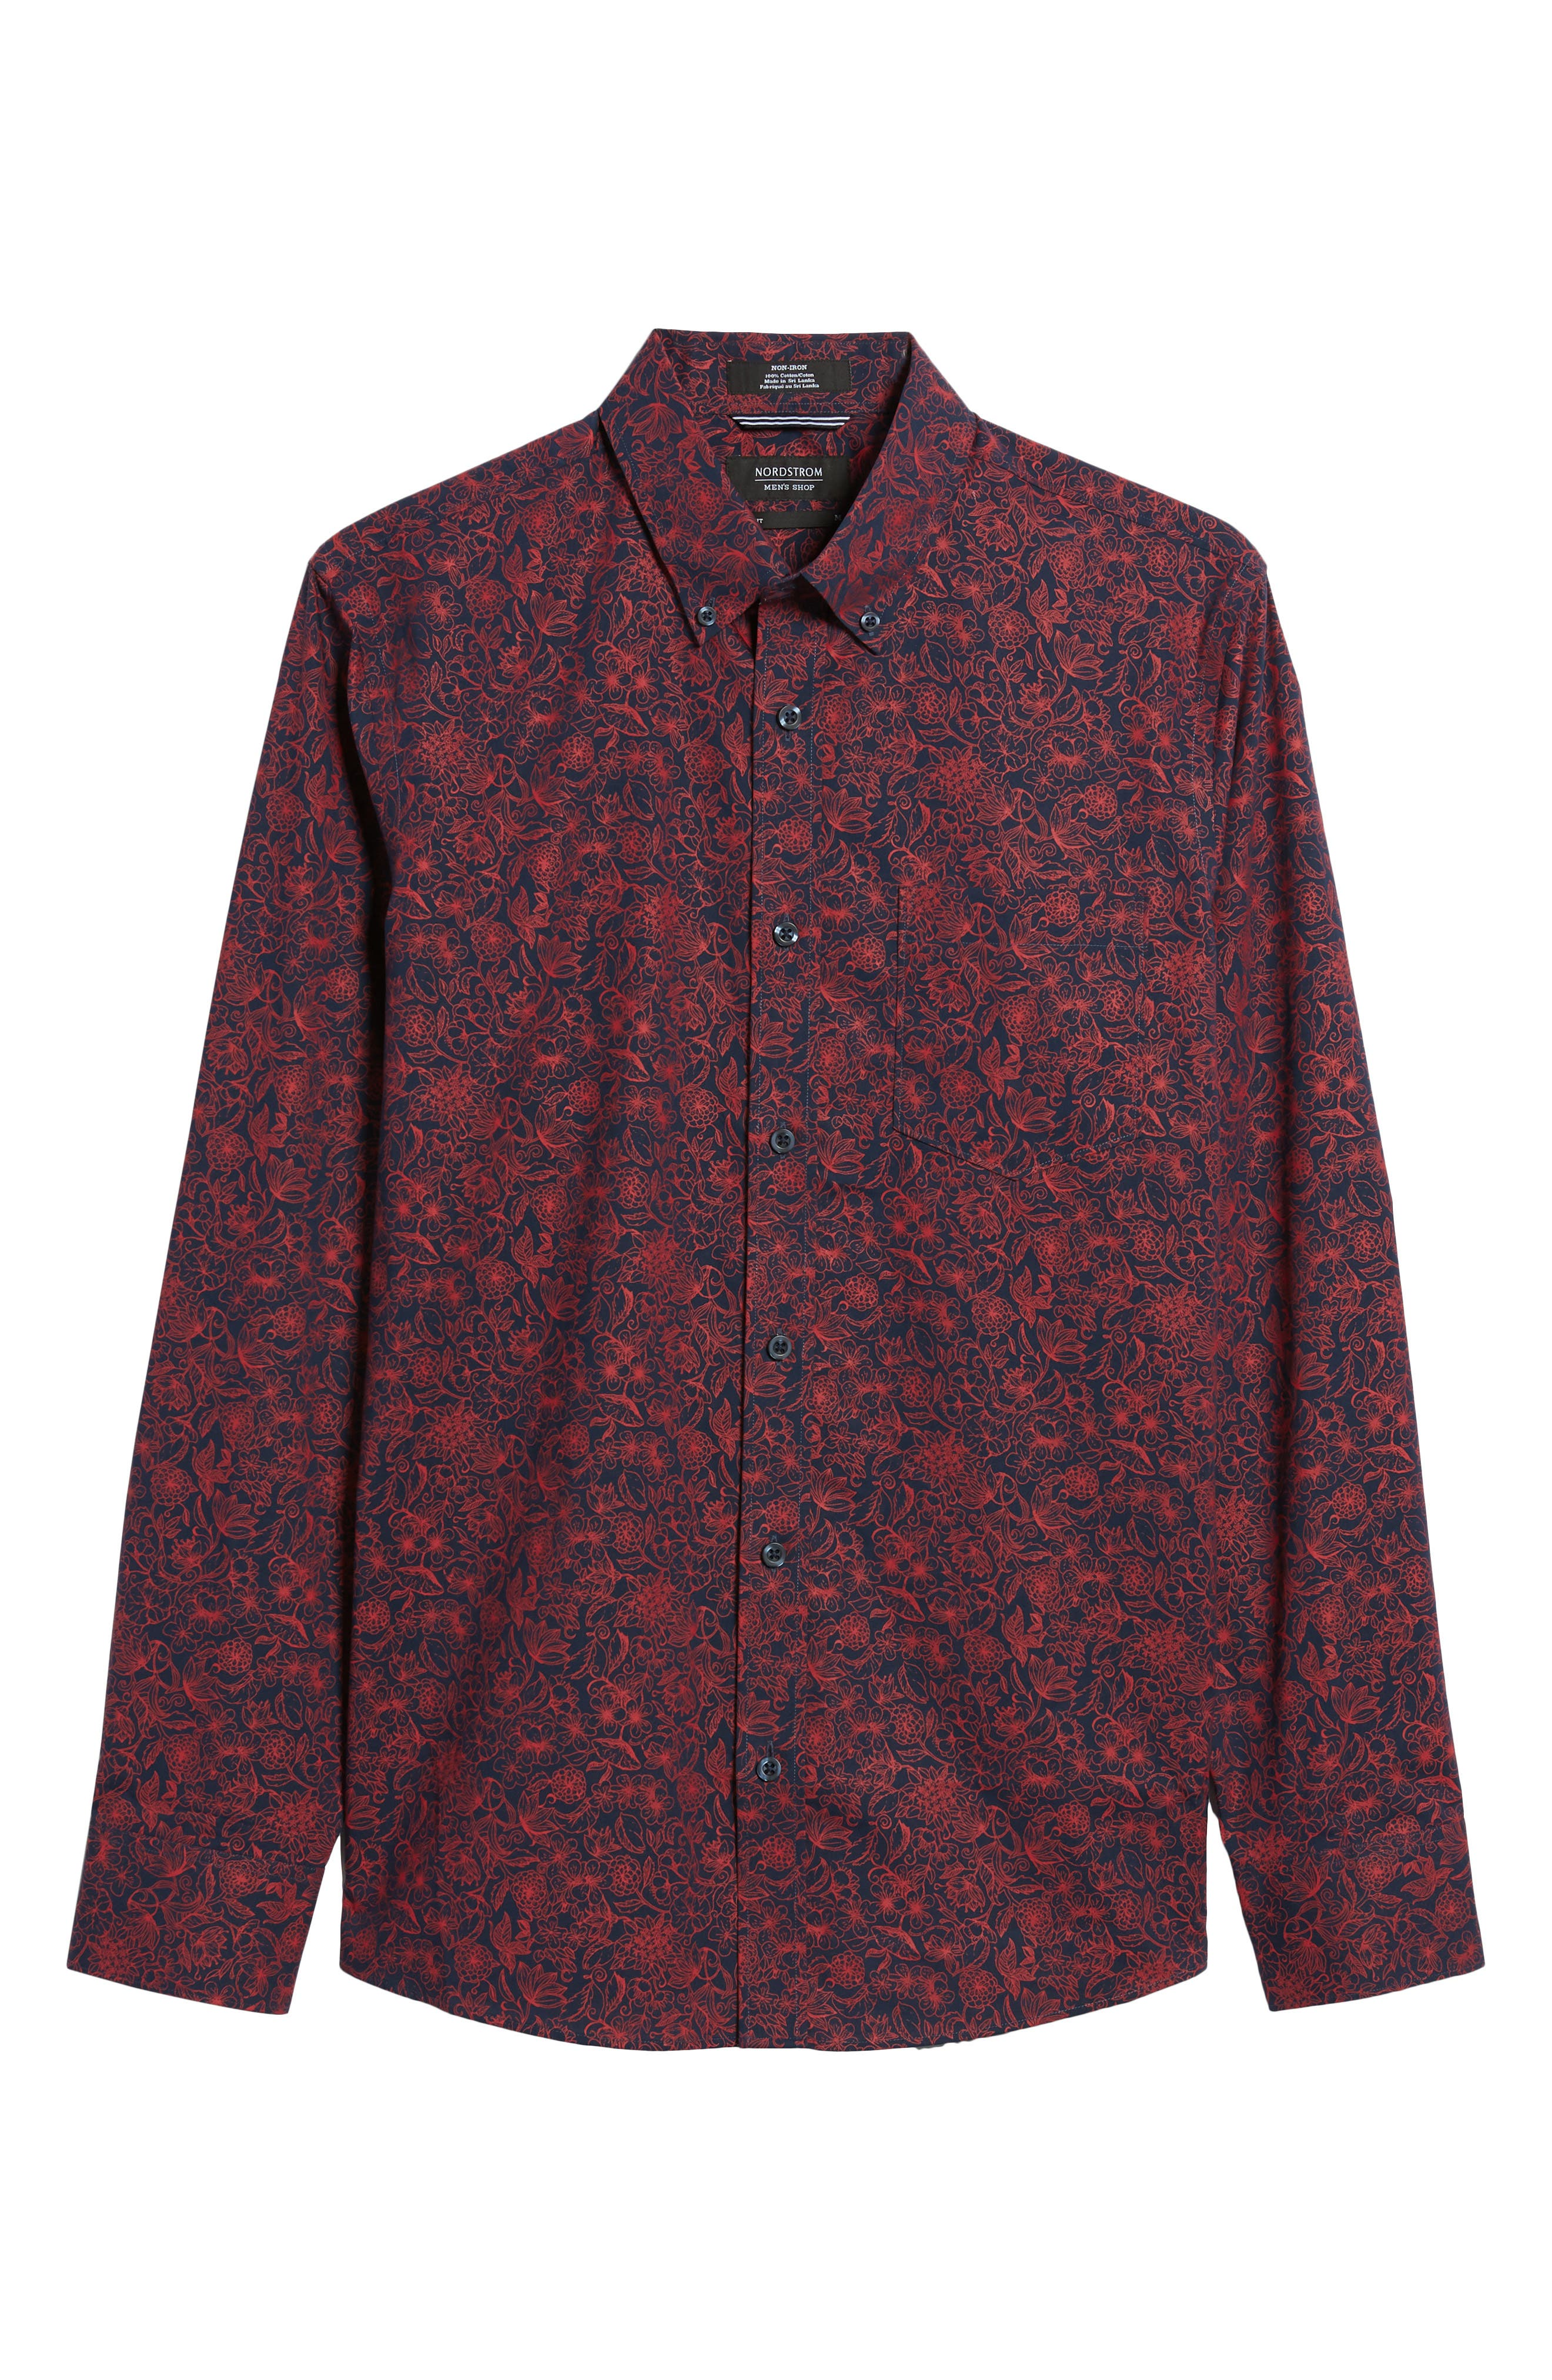 Trim Fit Non-Iron Floral Sport Shirt,                             Alternate thumbnail 6, color,                             Navy Iris Red Bloom